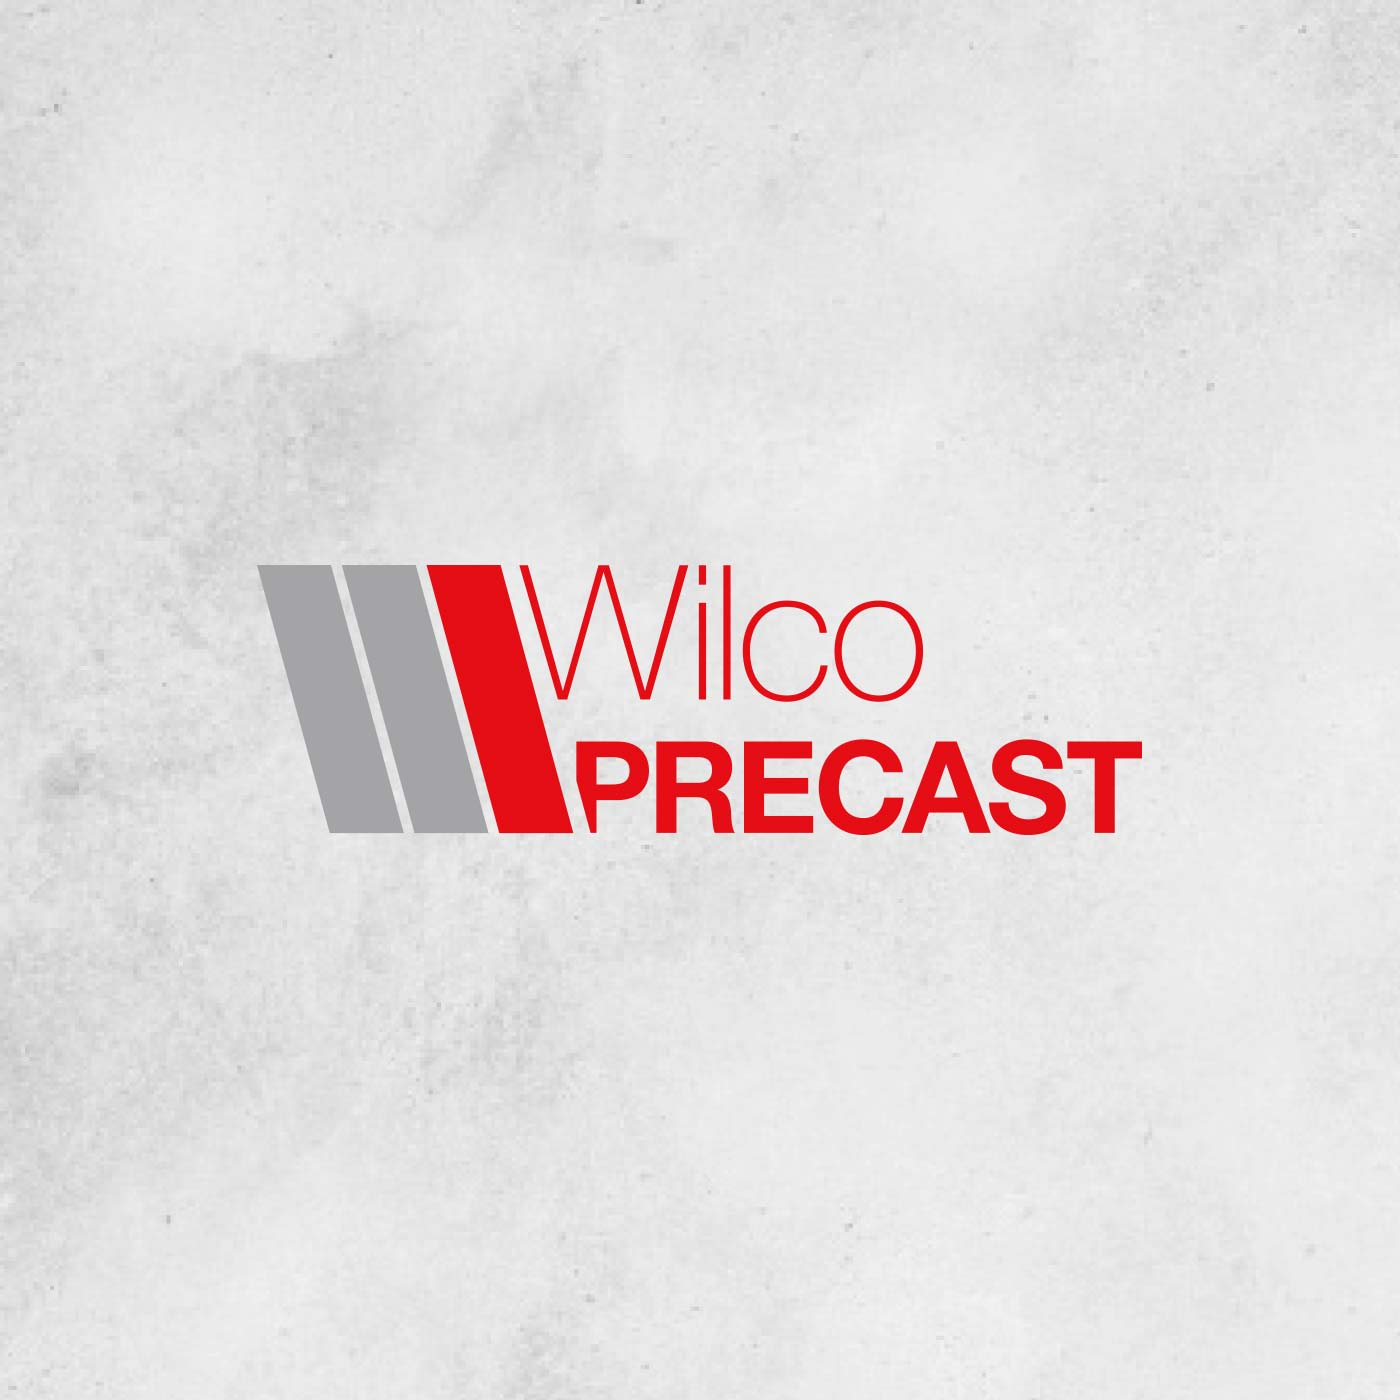 logo design for wilco precast